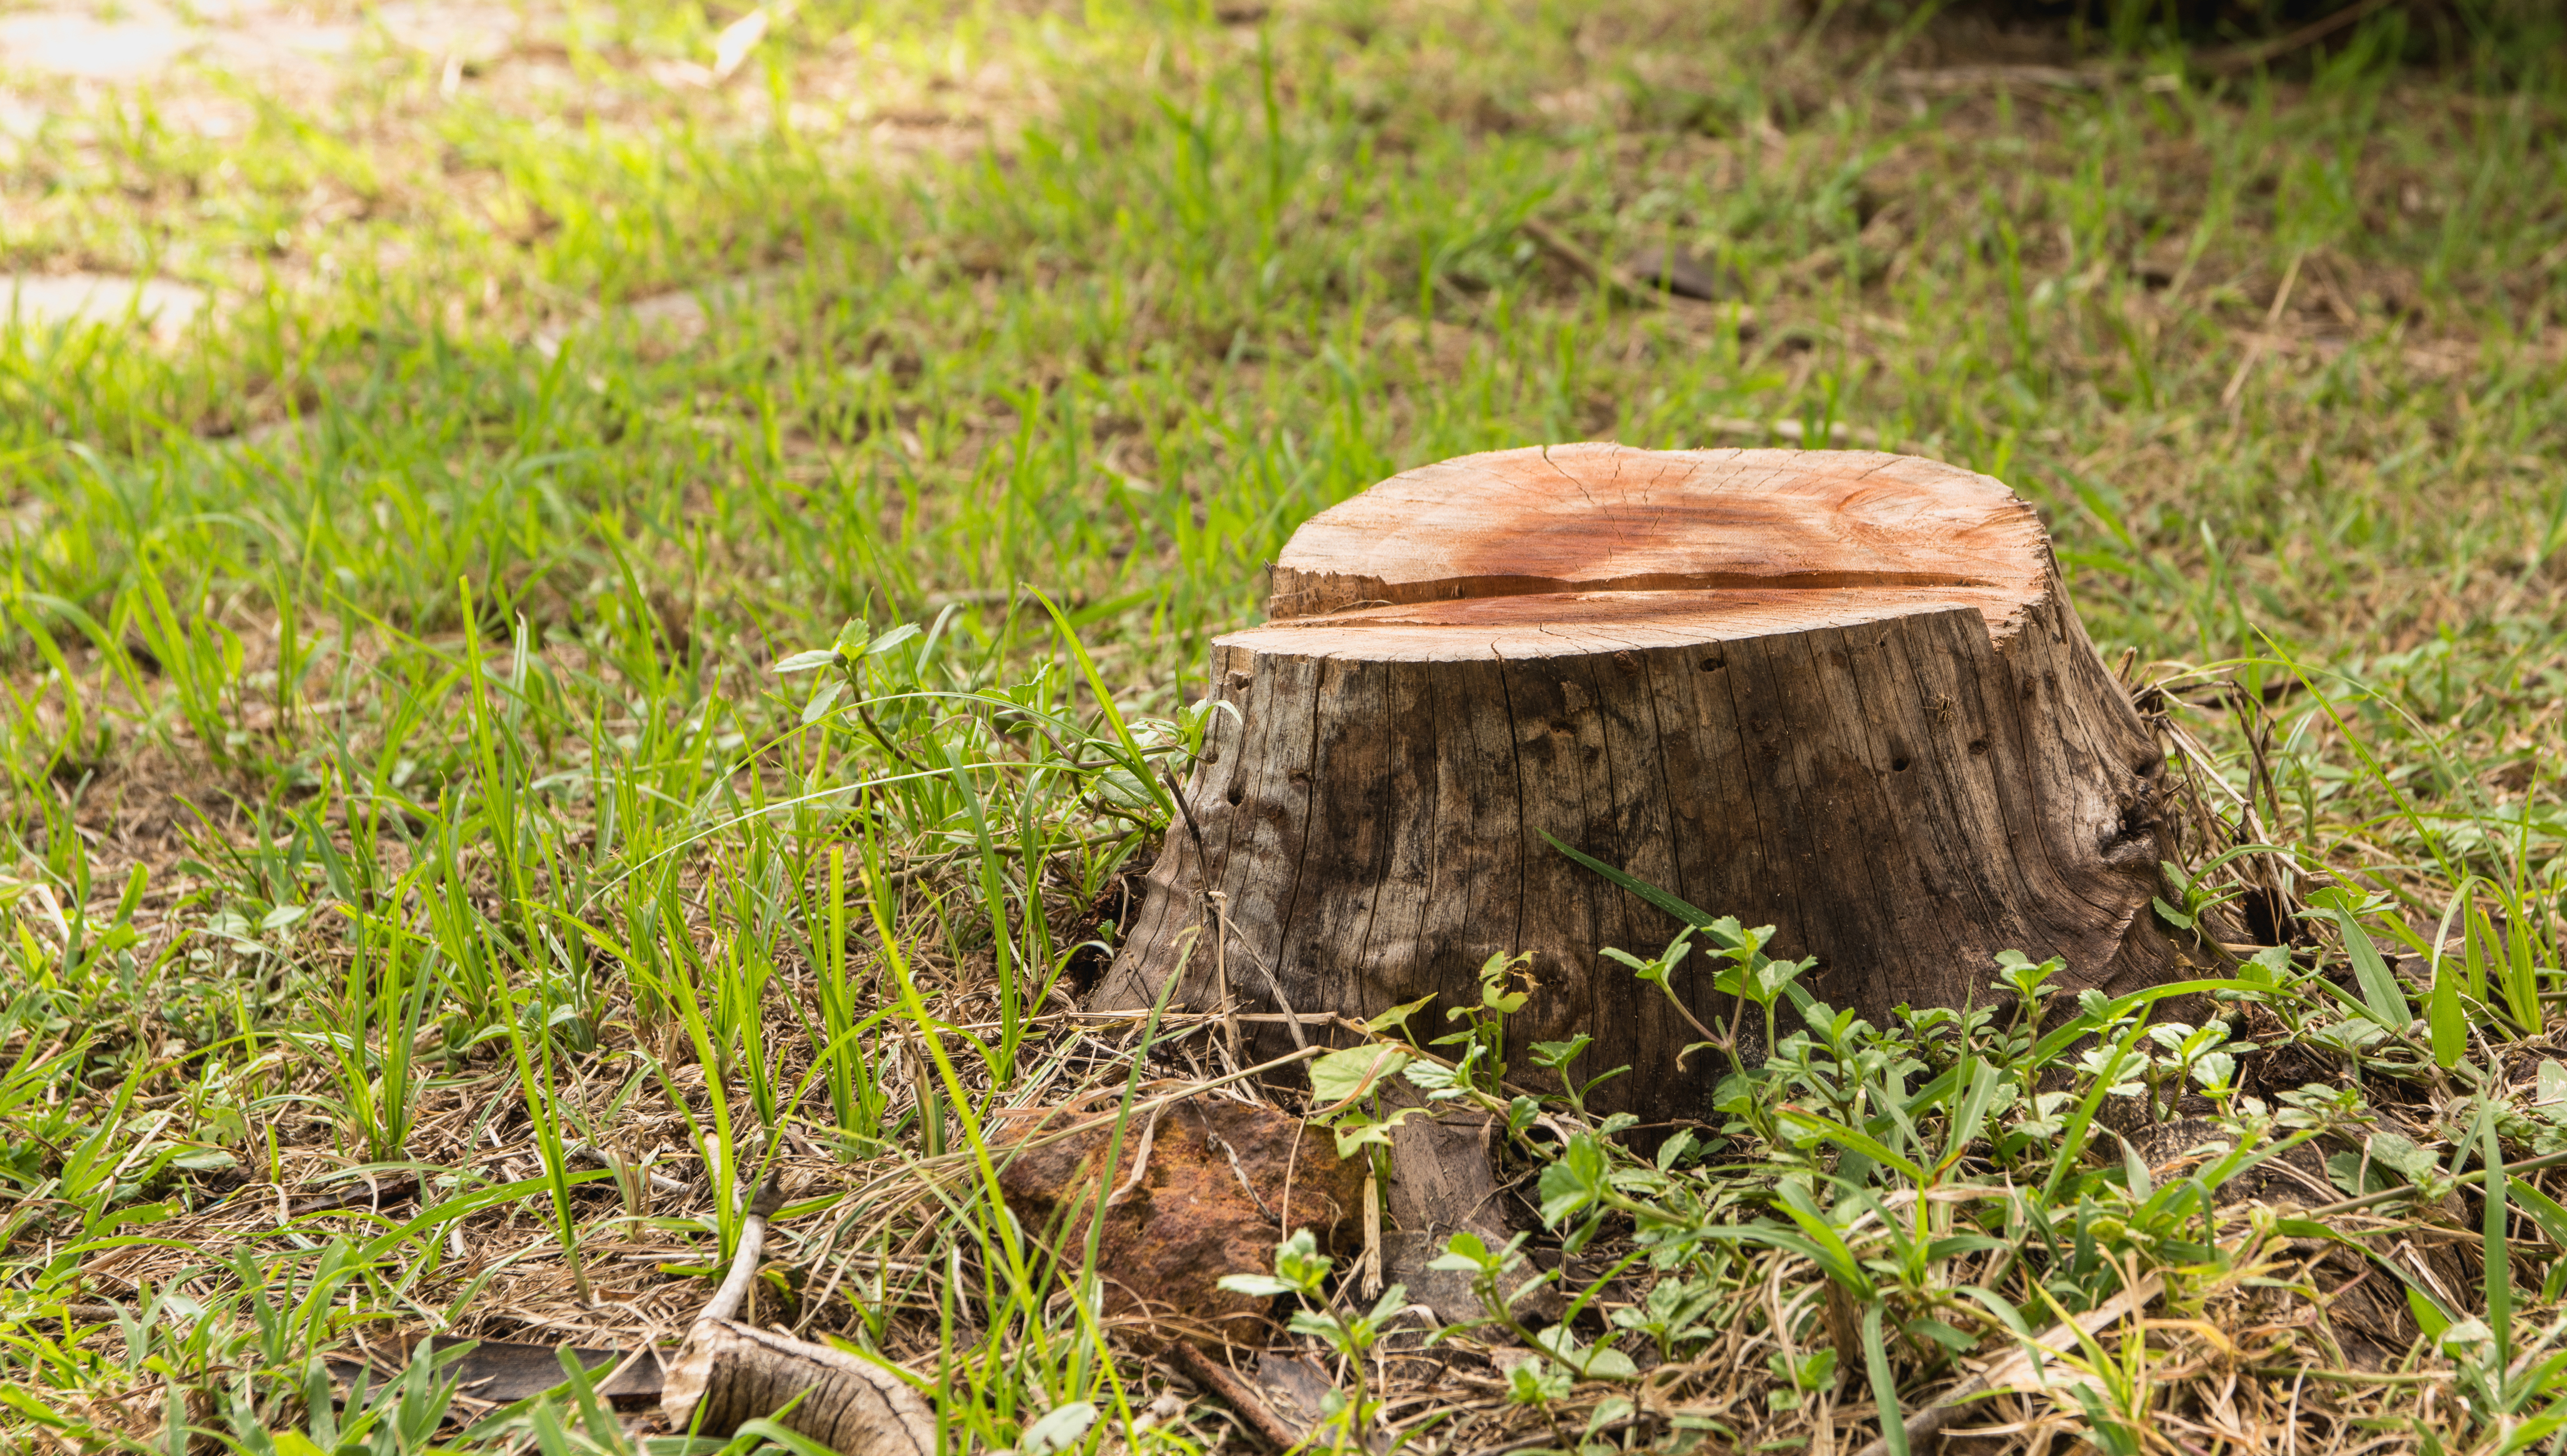 How to Fix the Soil That Had a Tree Stump in the Ground